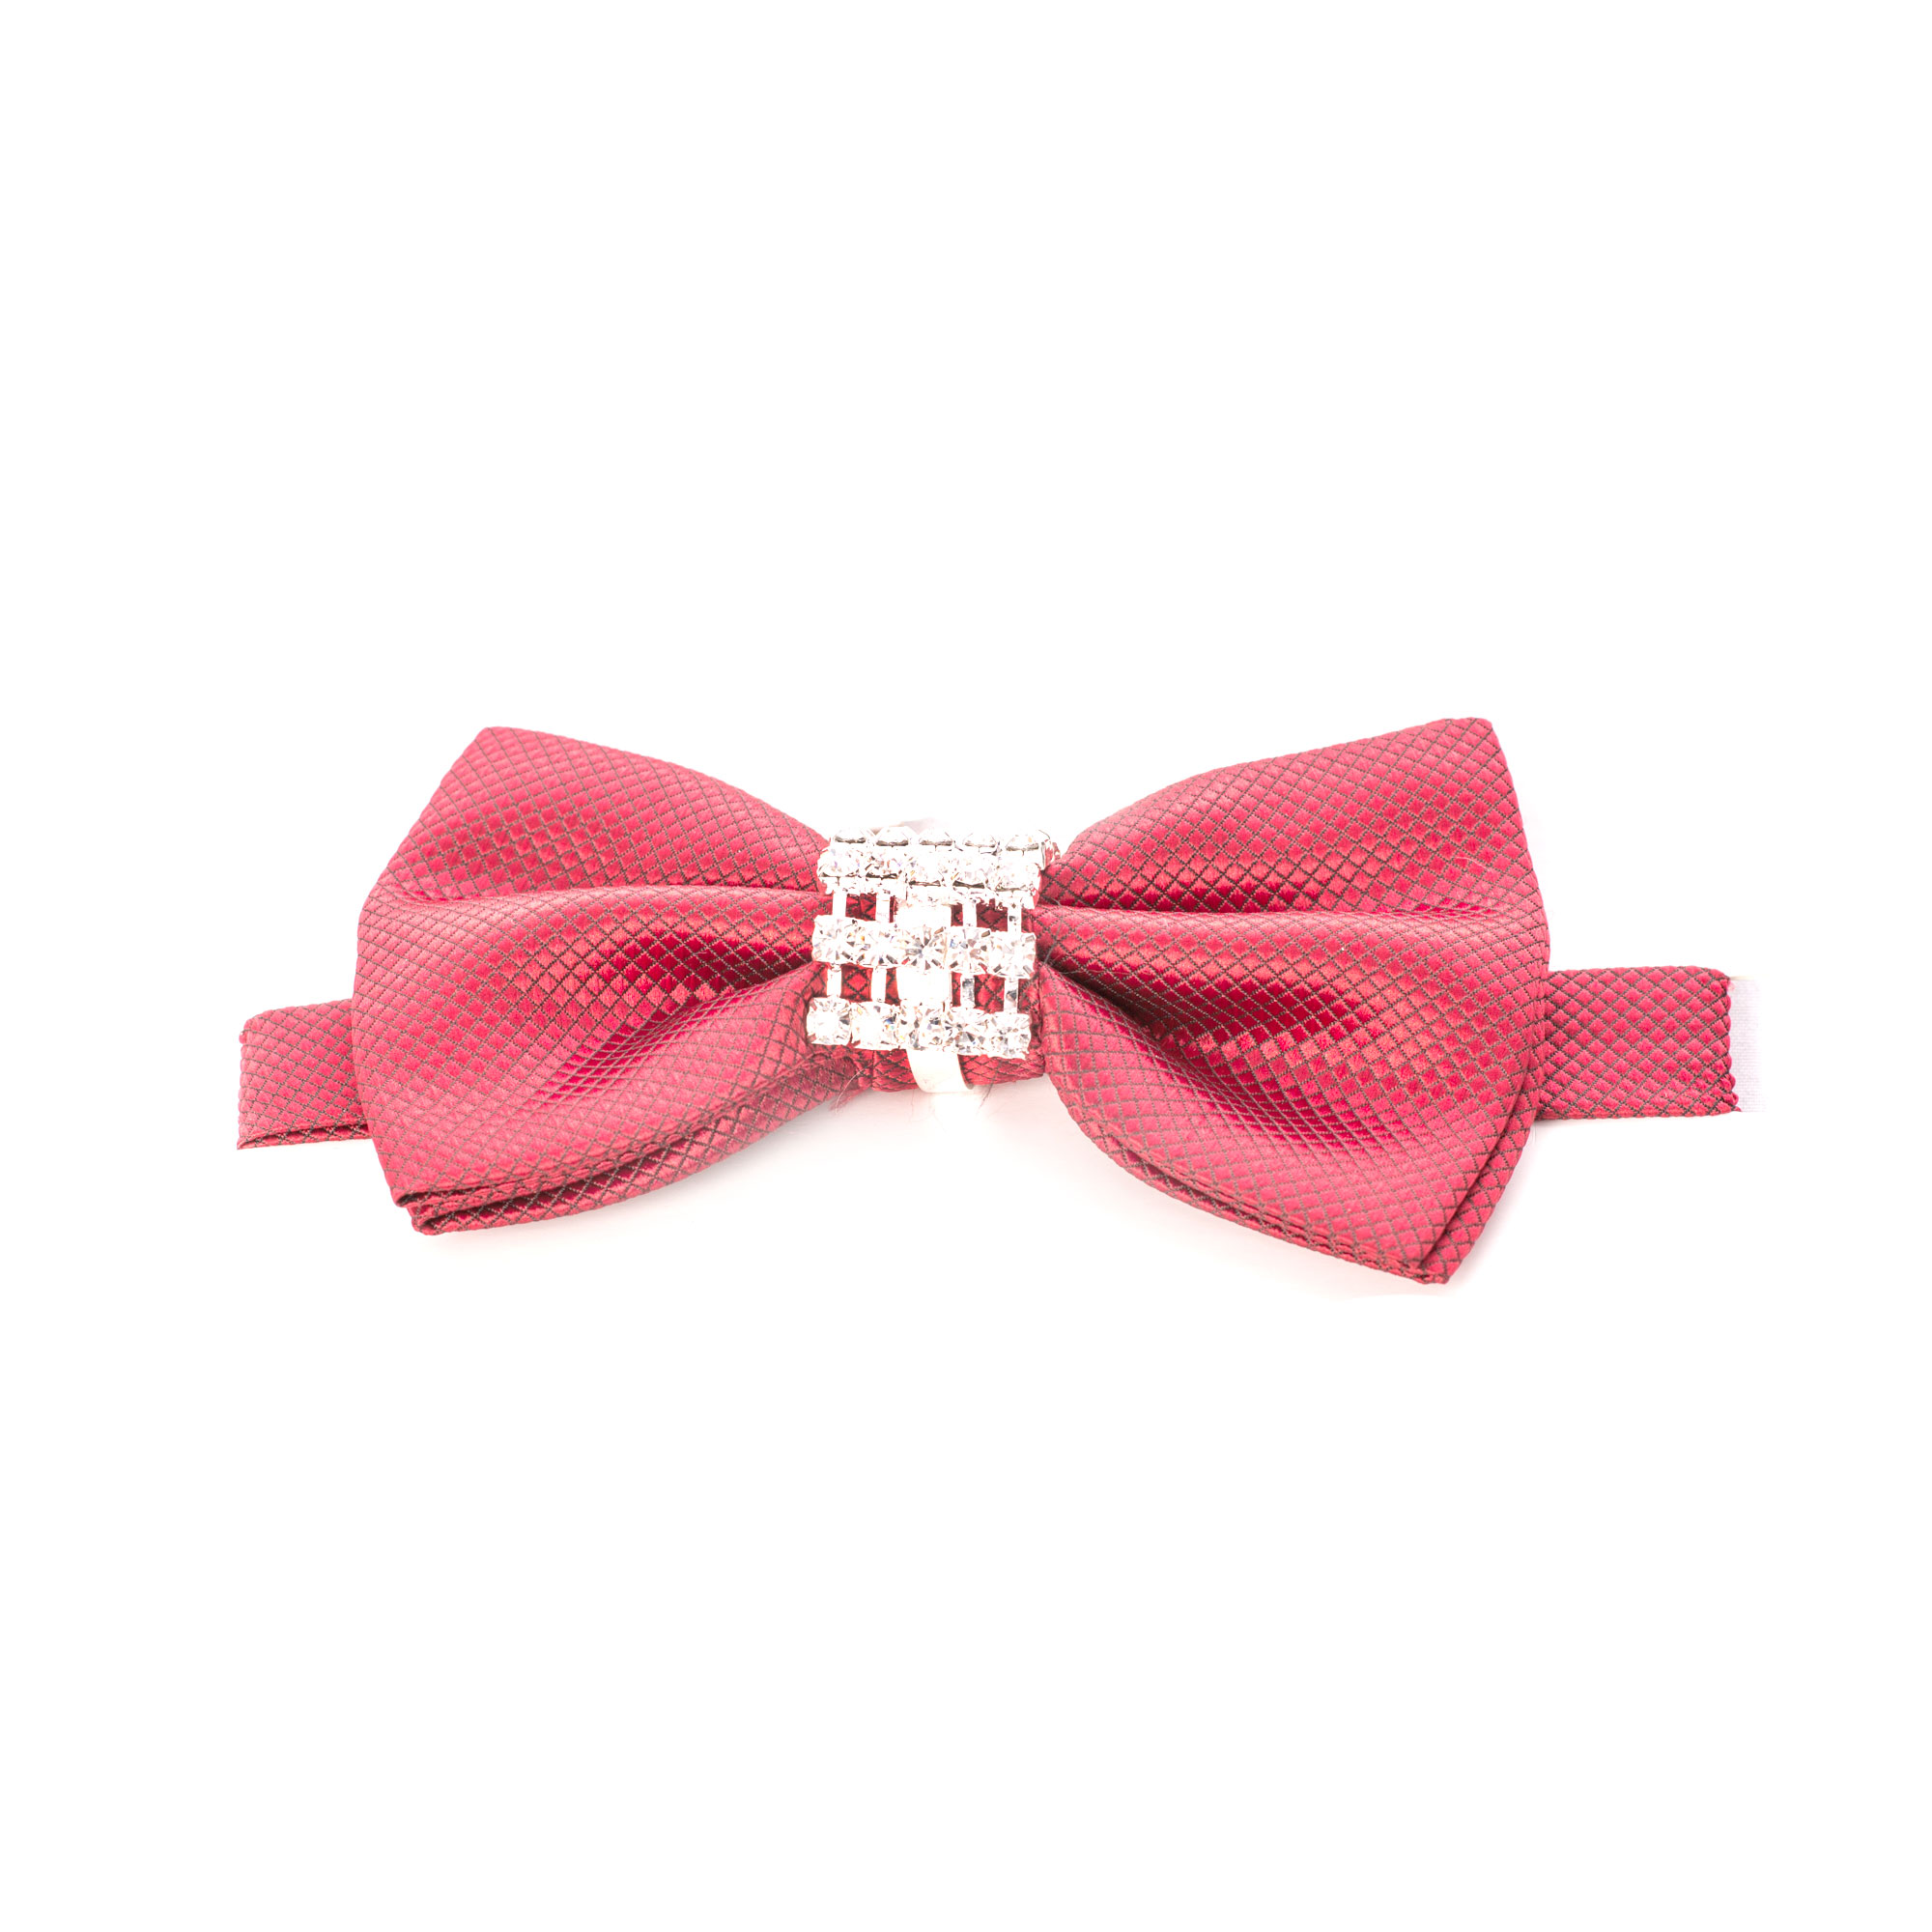 Crystalized Solid Men's Bowties EBBT20-3B